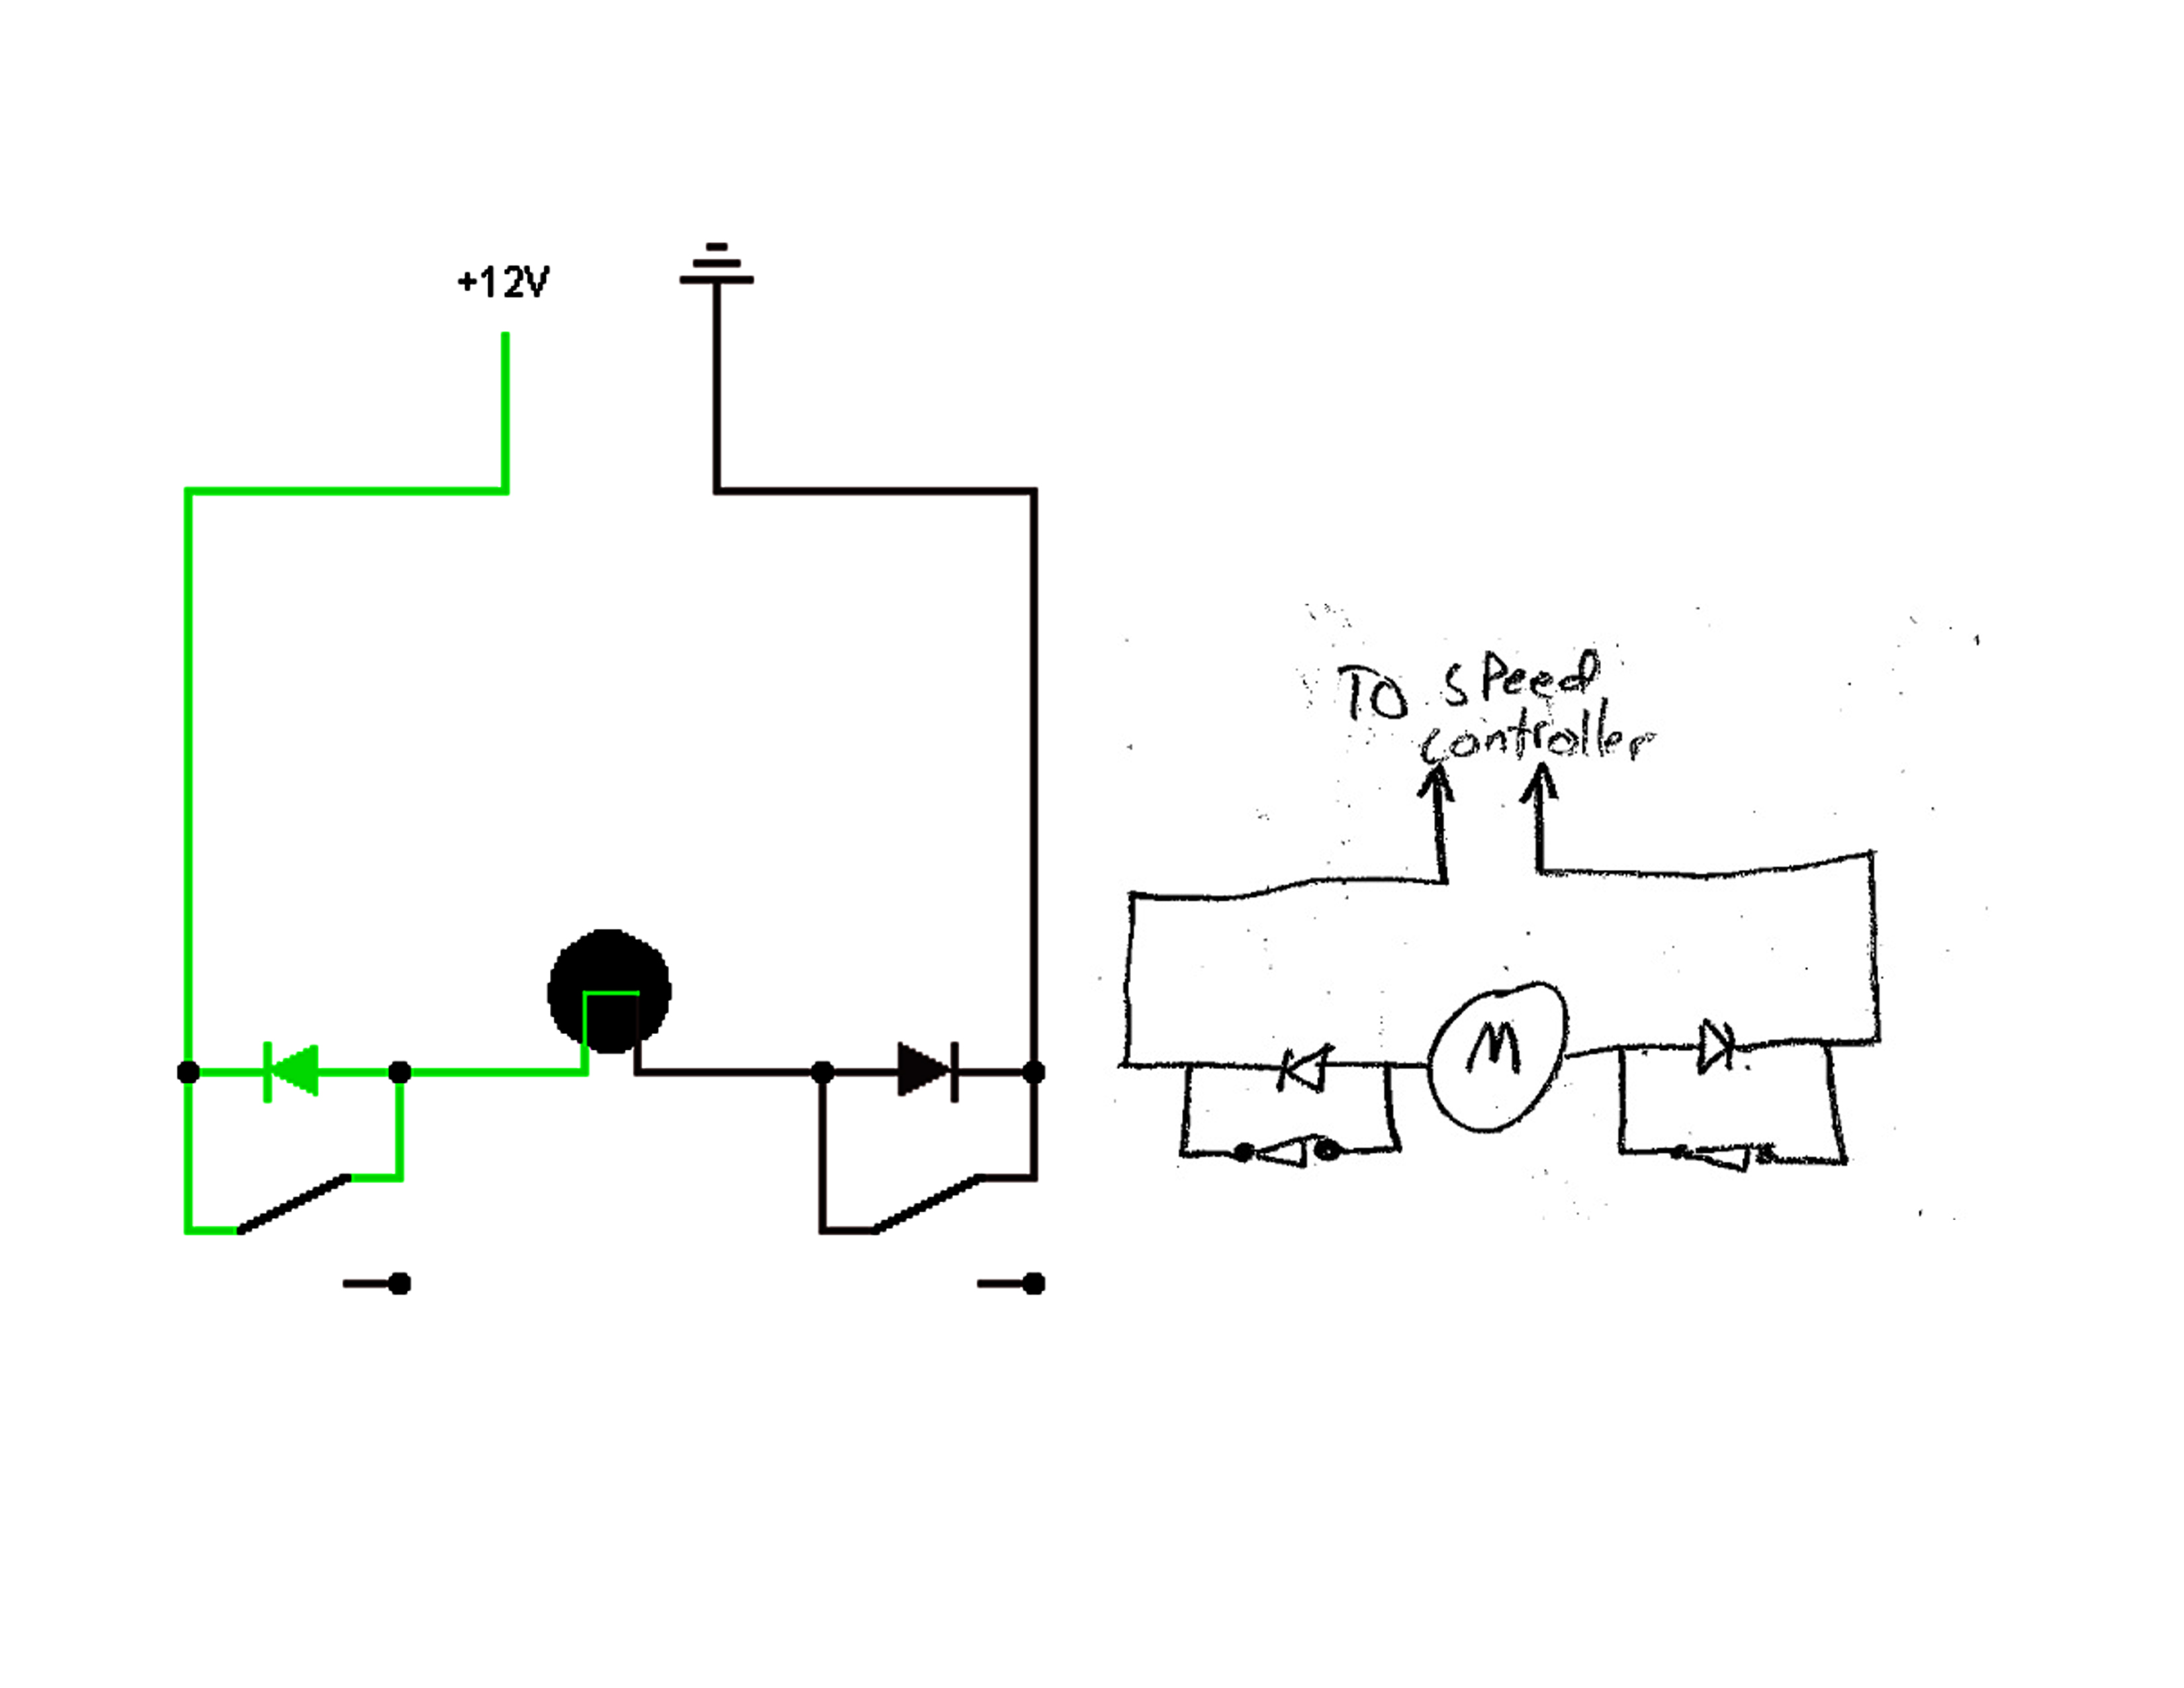 tommy gate wiring diagram tommy gate controller wiring